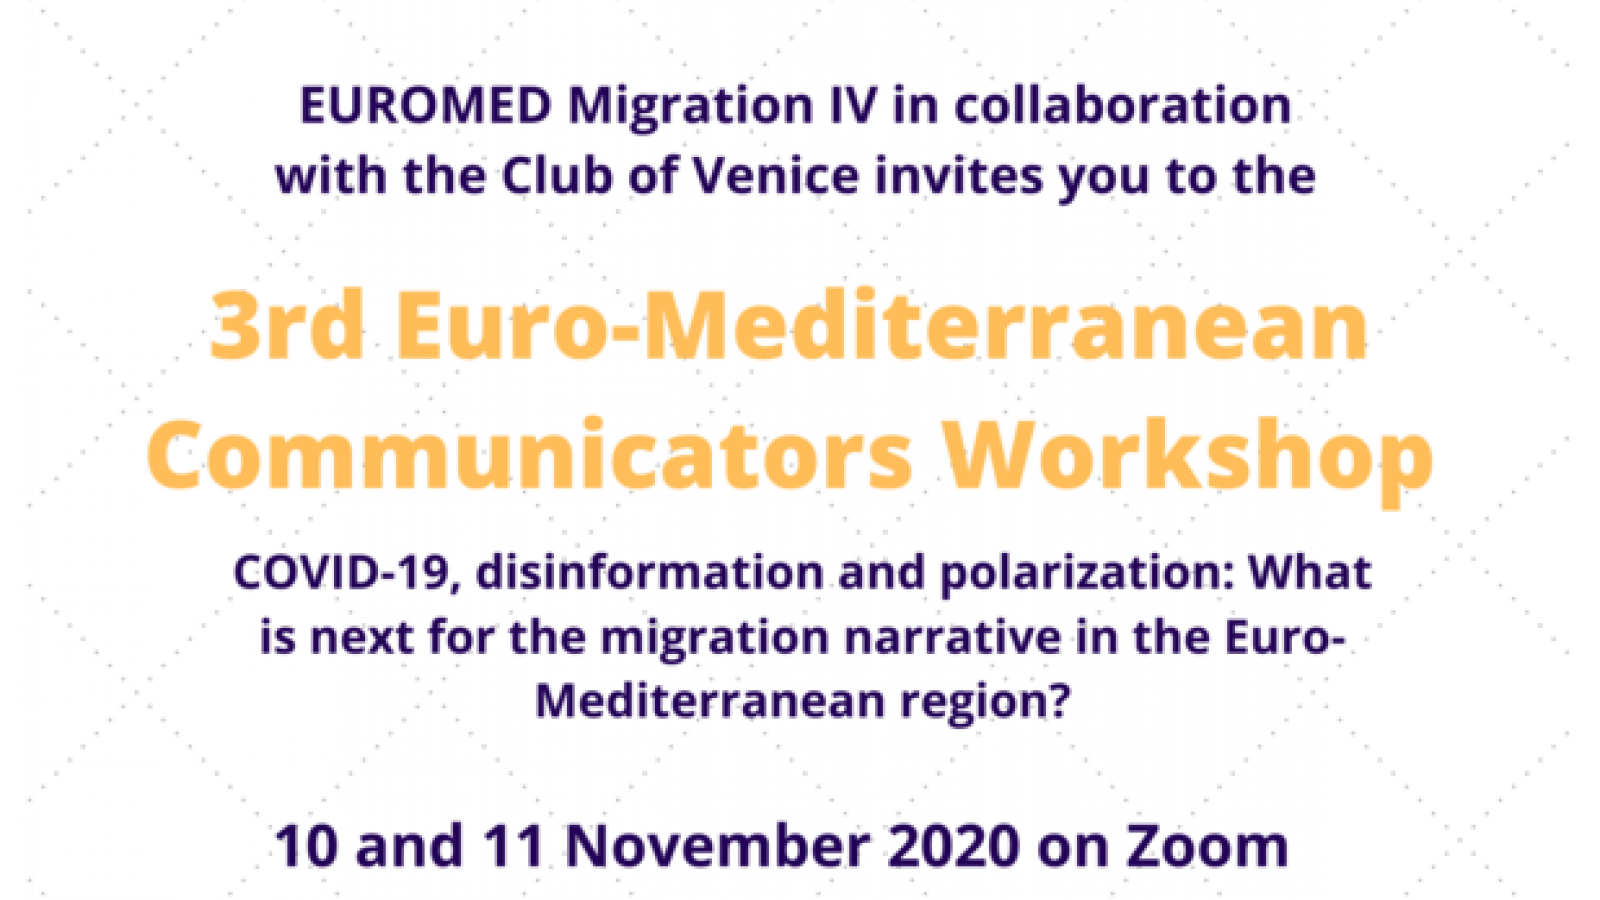 Euromed Migration: Third Euro-Mediterranean Communicator's Workshop for a new balanced narrative on migration